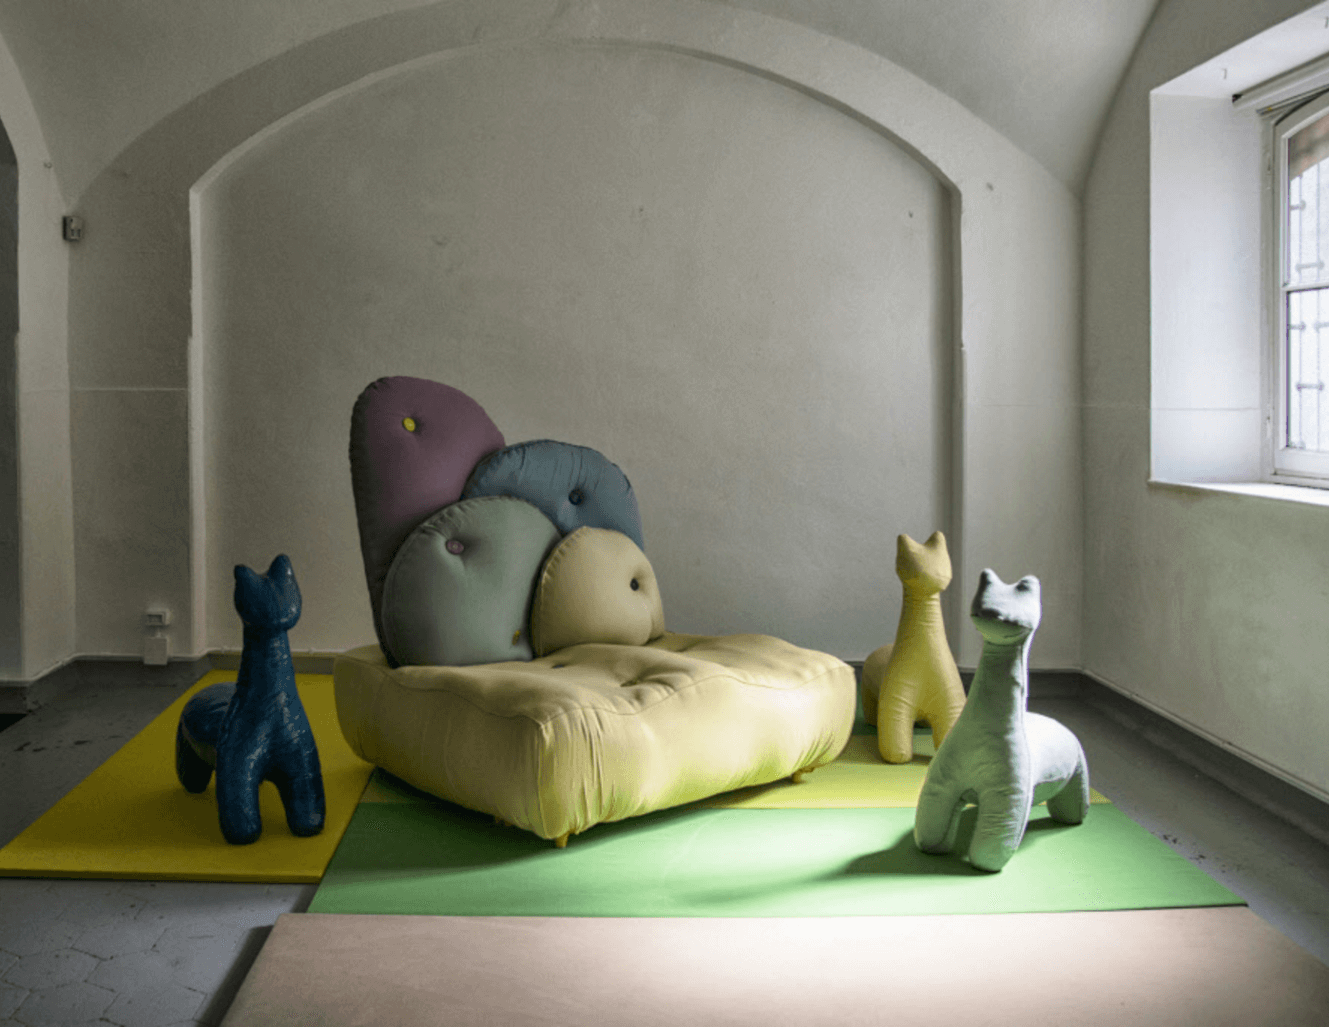 Animal Pouffs and a sofa made using Sunbrella fabrics at the Rosana Orlandi gallery in Milan, Italy